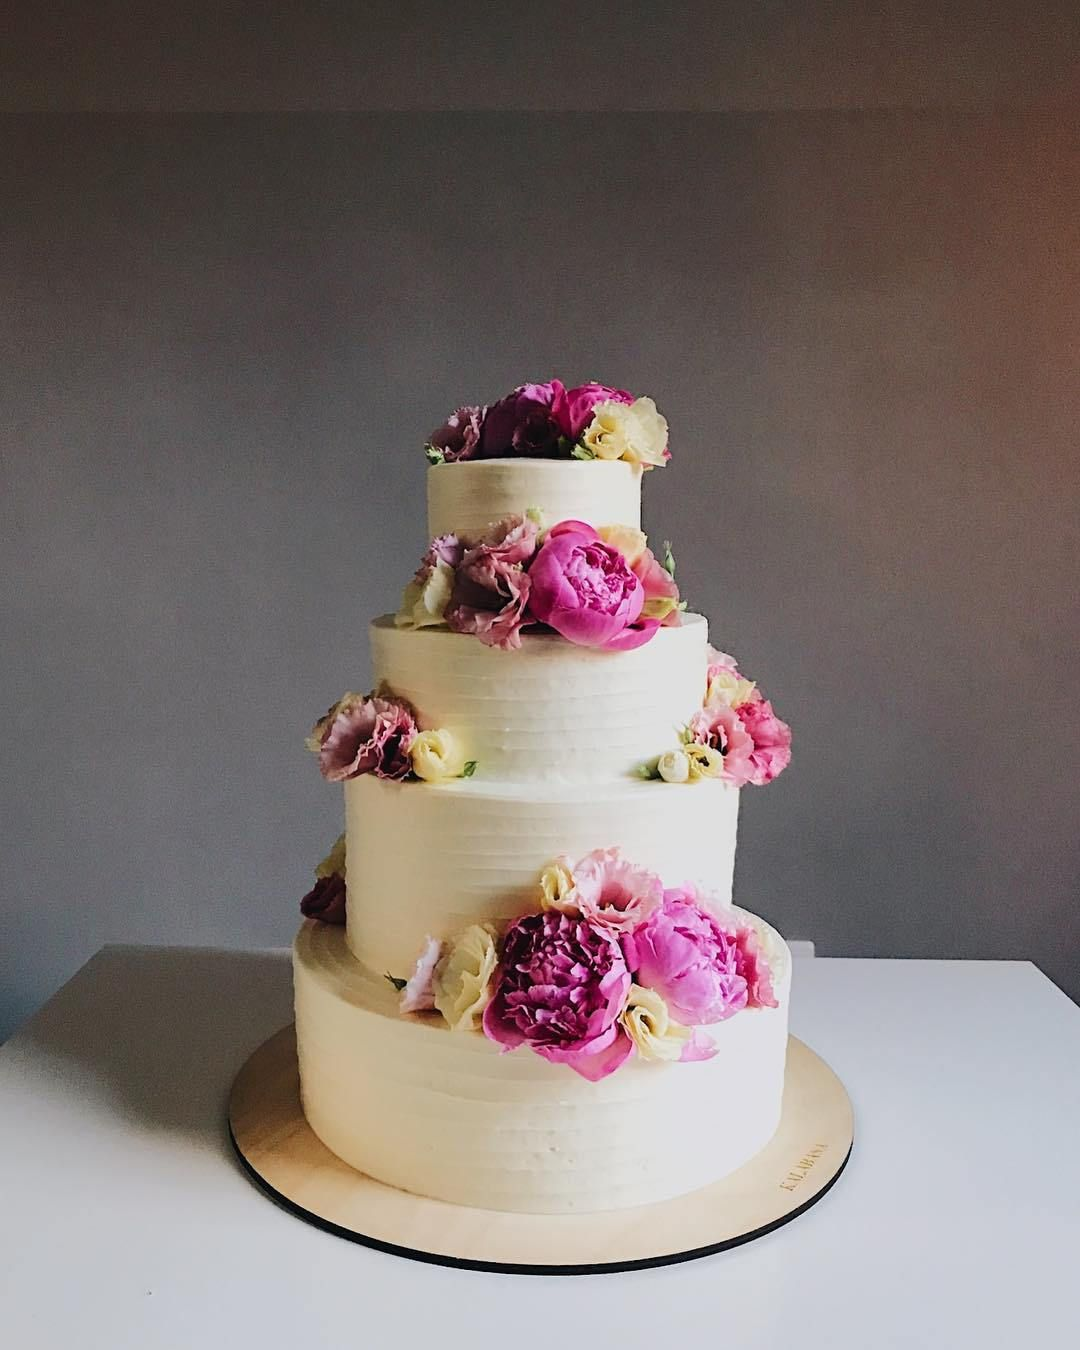 Four Tier Wedding Cake inspiration